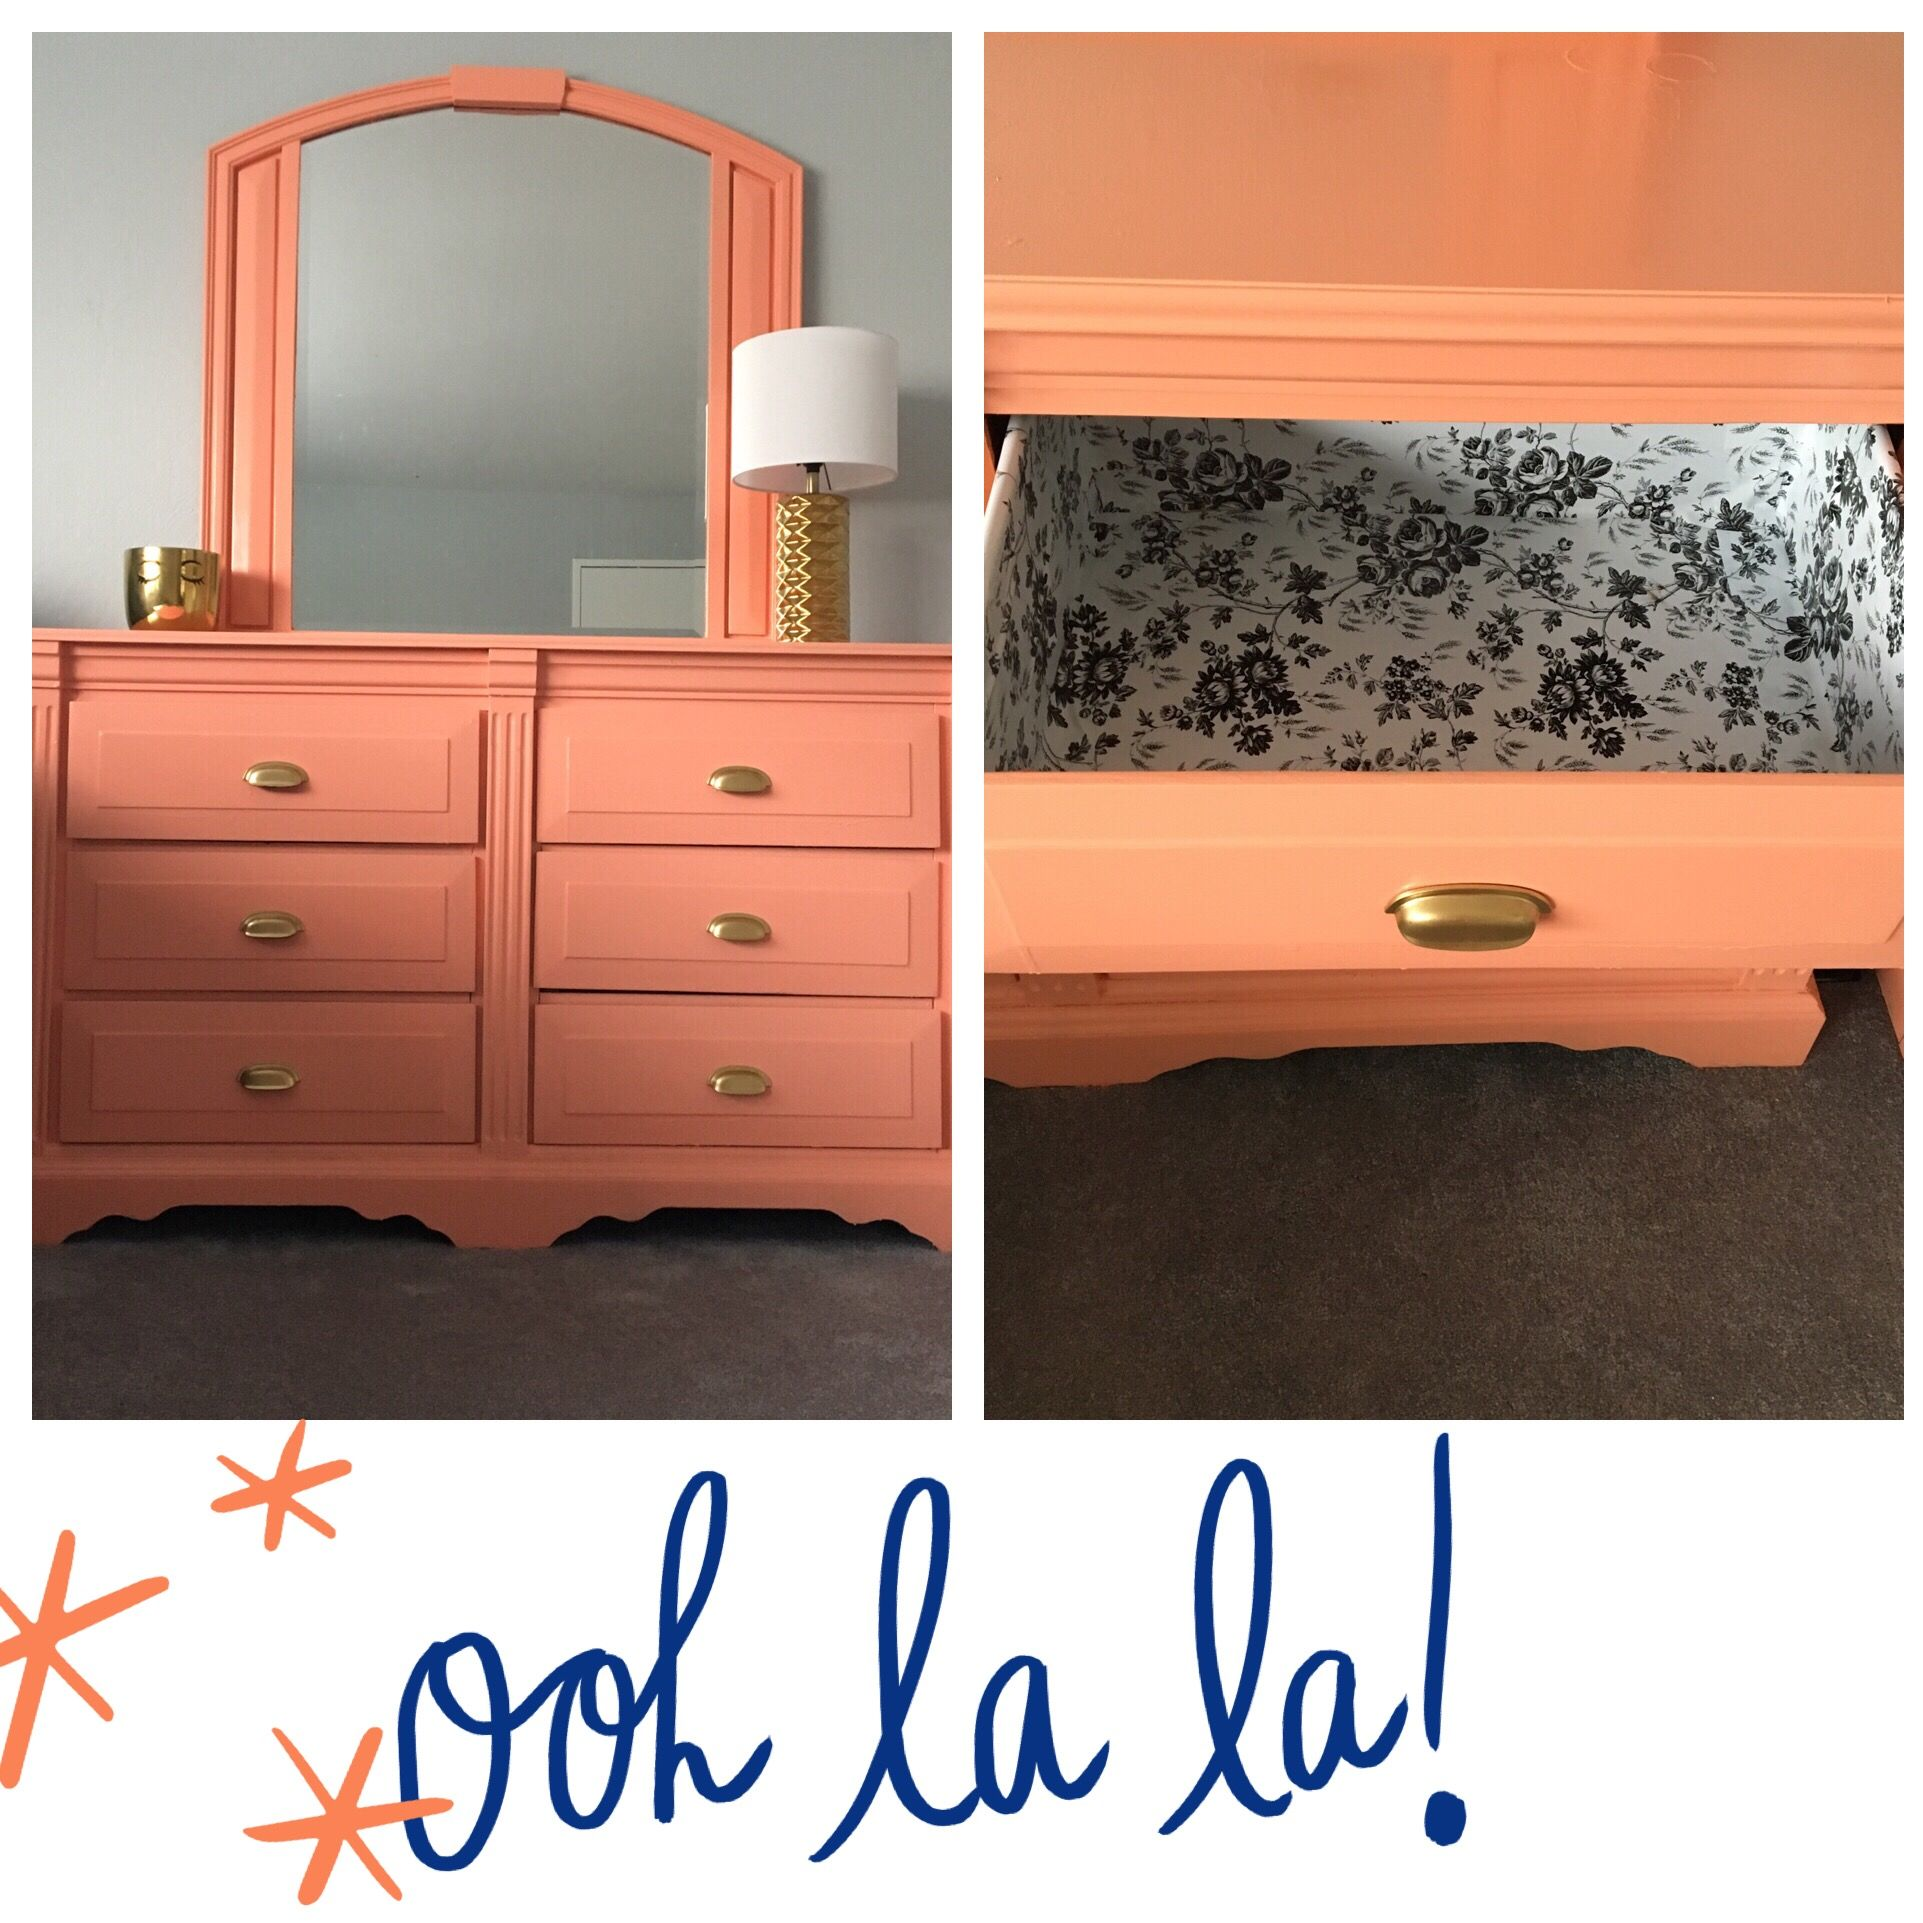 Peach painted dresser with floral contact paper from dollar store